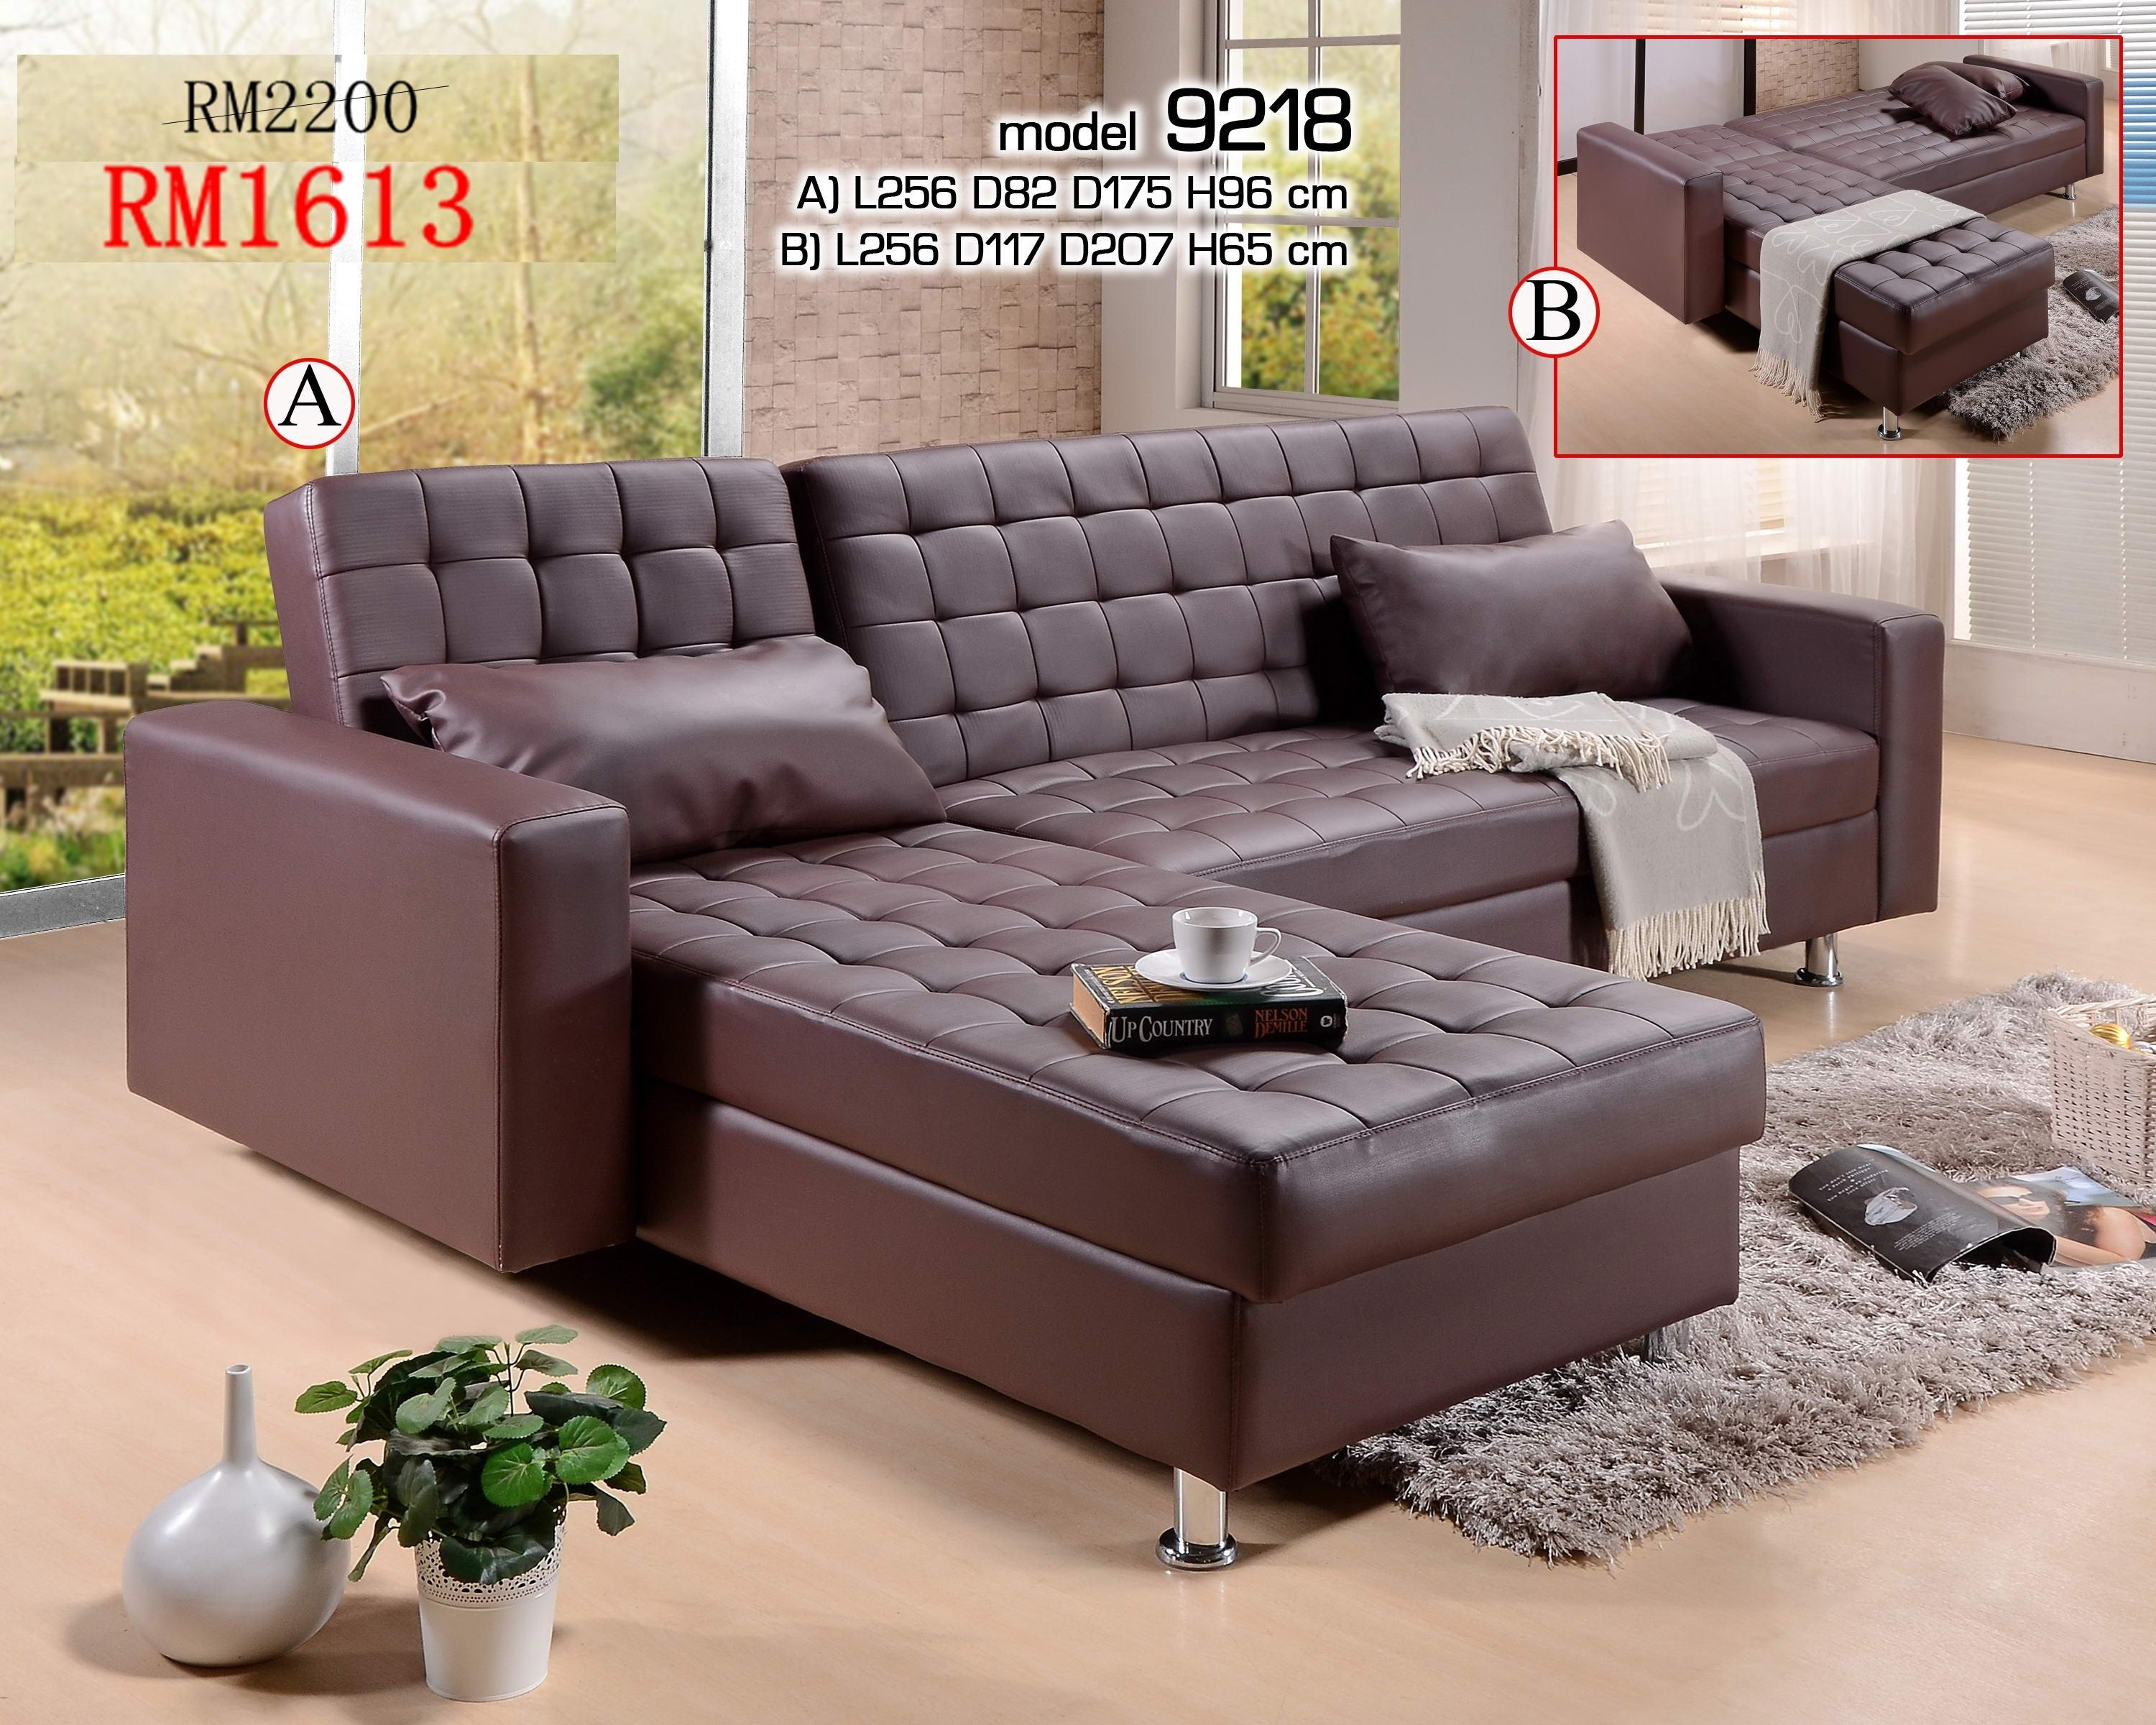 Sofas Center : Lovely Sectional Sofa Ikea L Shapededs Rv With Air Inside L Shaped Sofa Bed (View 8 of 20)